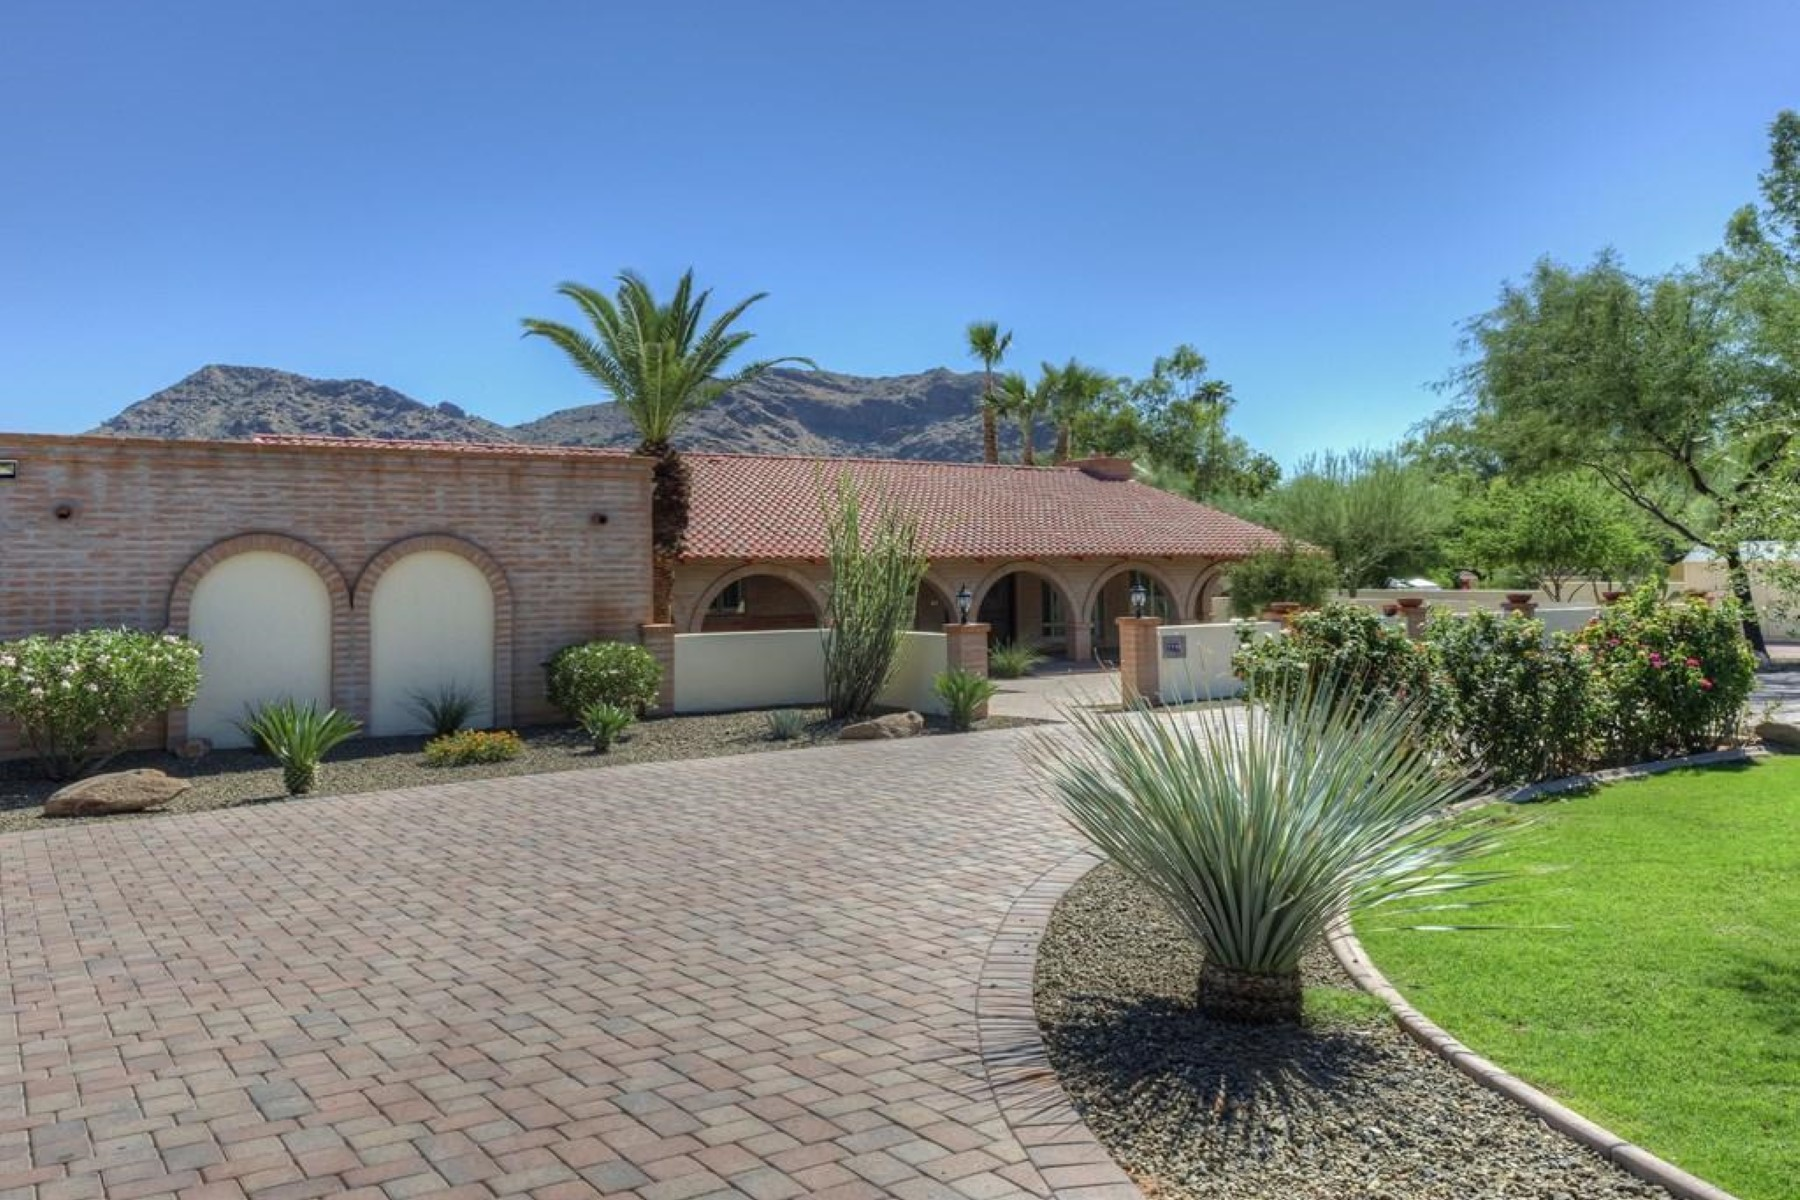 Single Family Home for Sale at Surrounded by mountain views in the heart of Paradise Valley 7745 N Tatum Blvd Paradise Valley, Arizona 85253 United States